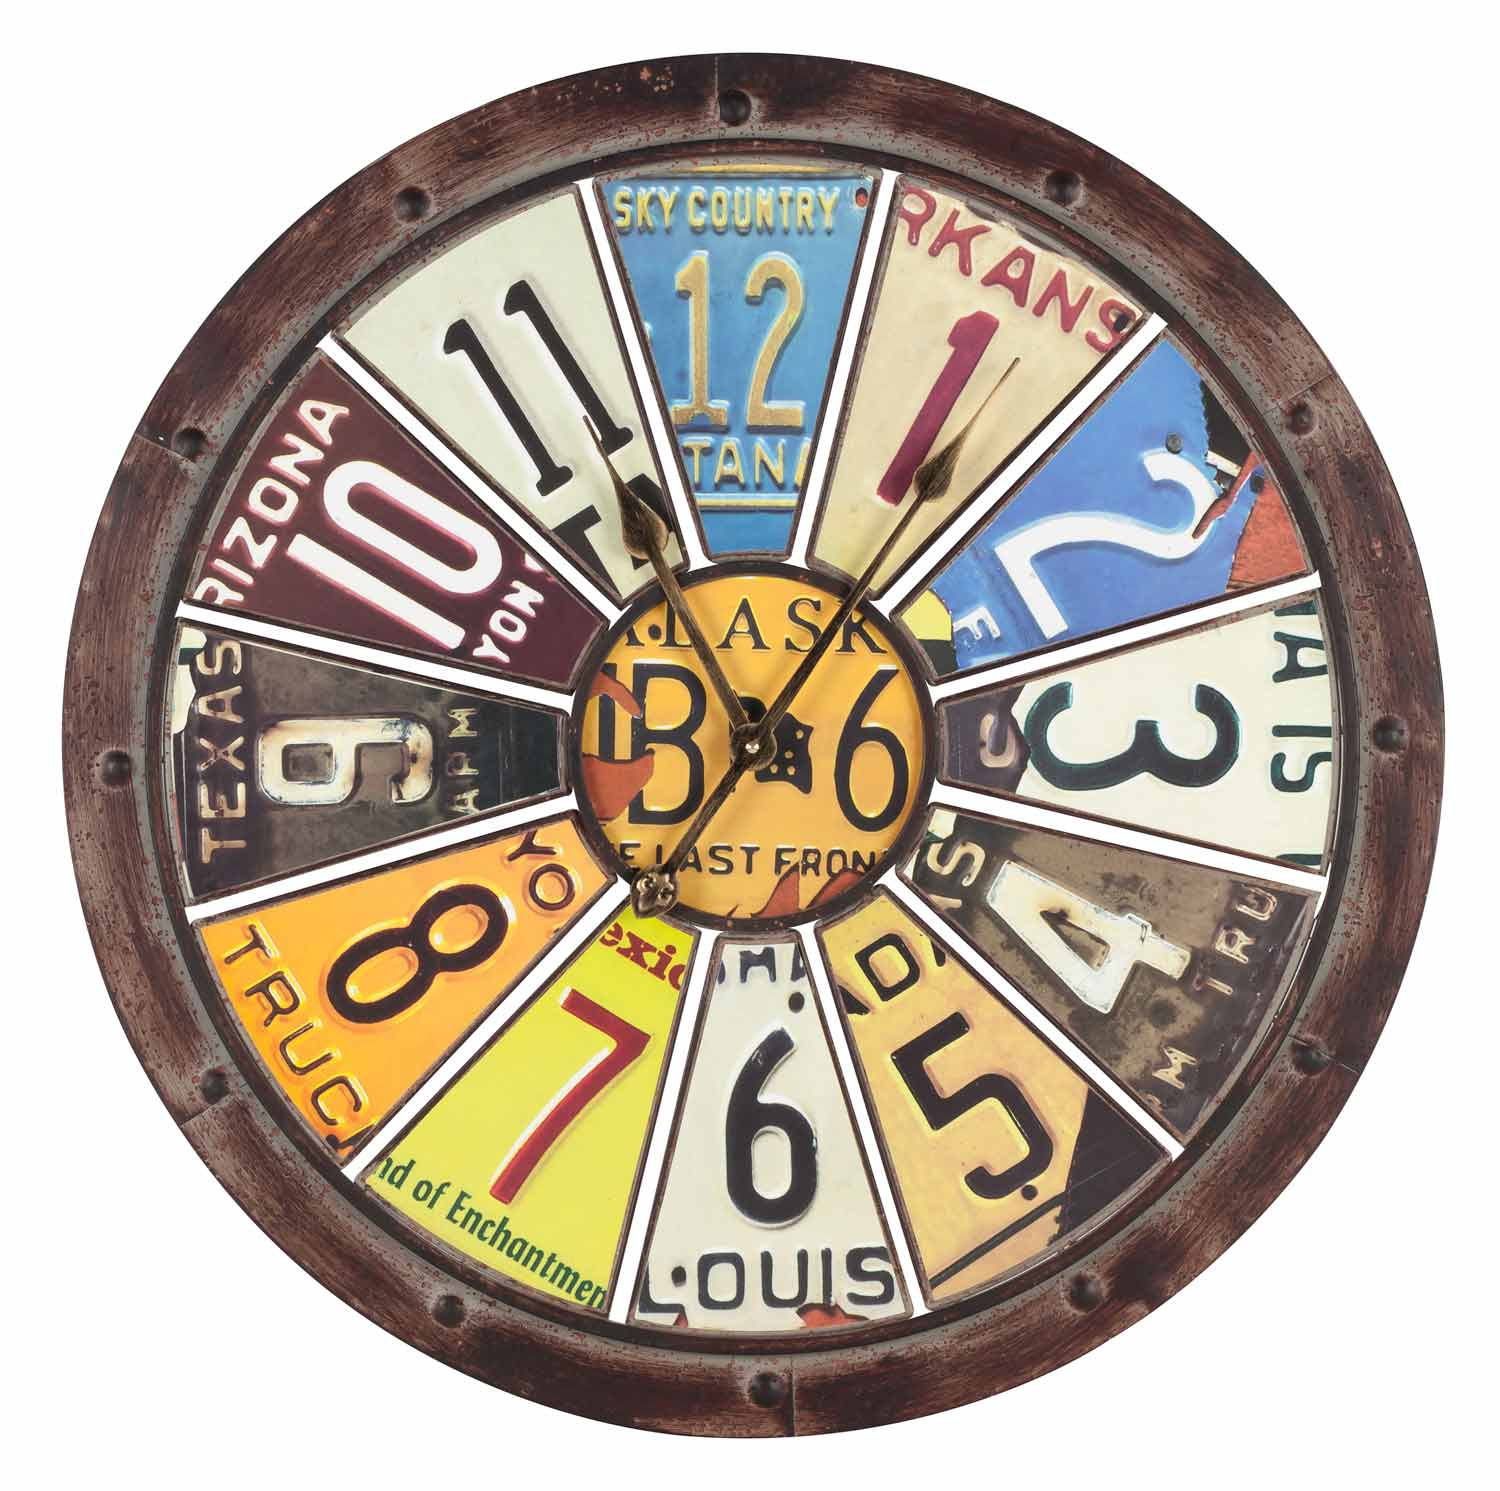 license plate wall clock. Black Bedroom Furniture Sets. Home Design Ideas